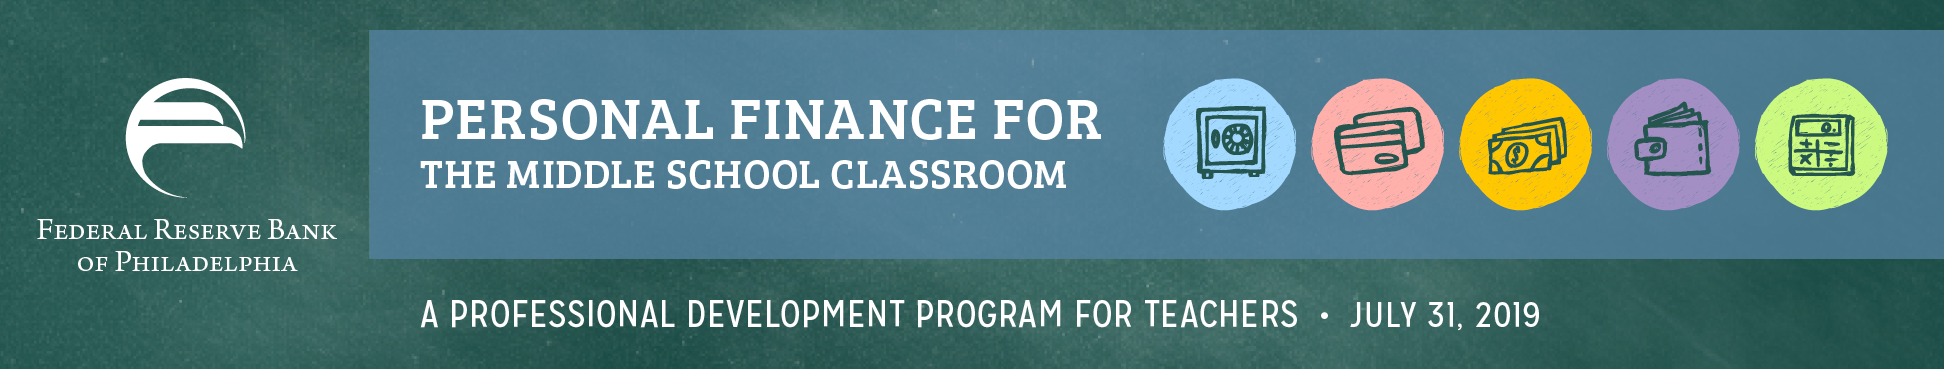 Personal Finance for the Middle School Classroom